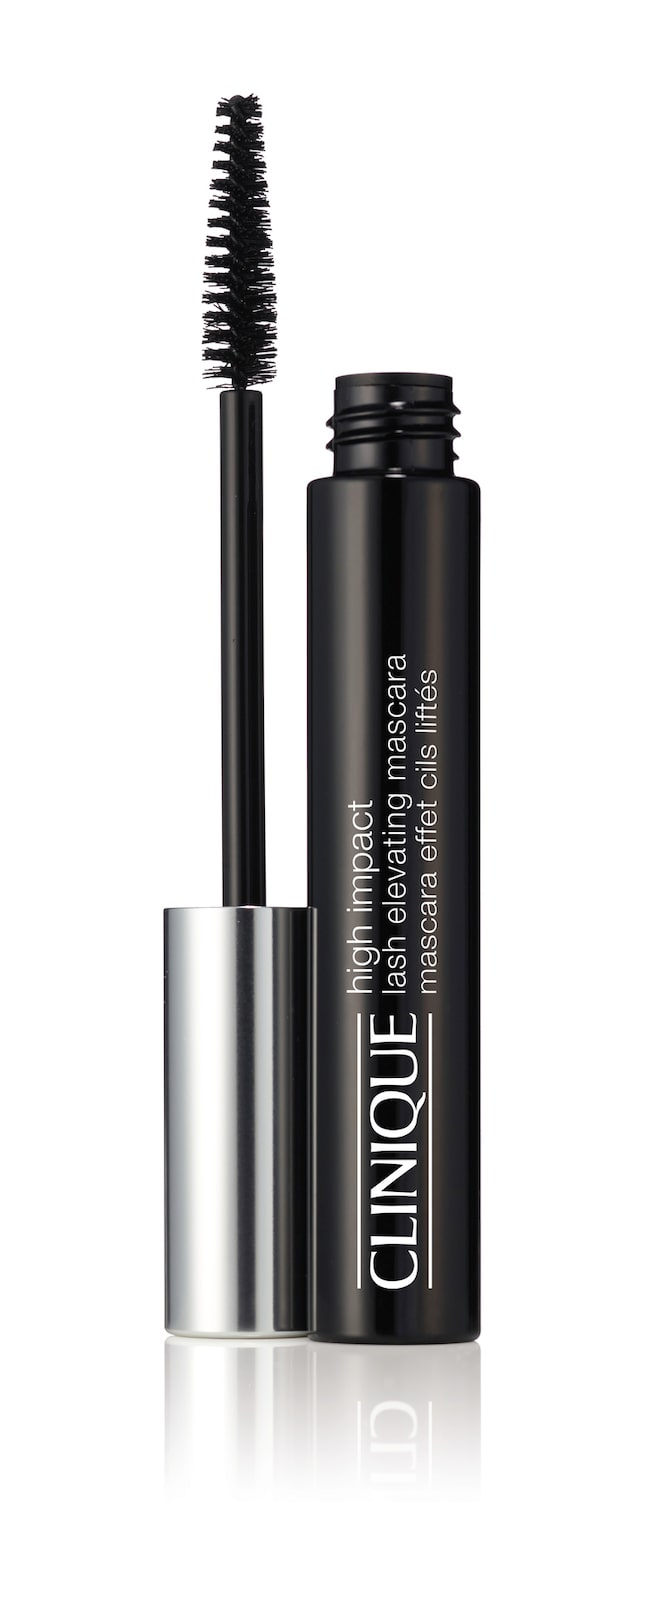 High impact lash elevating mascara, 225 kronor, Clinique